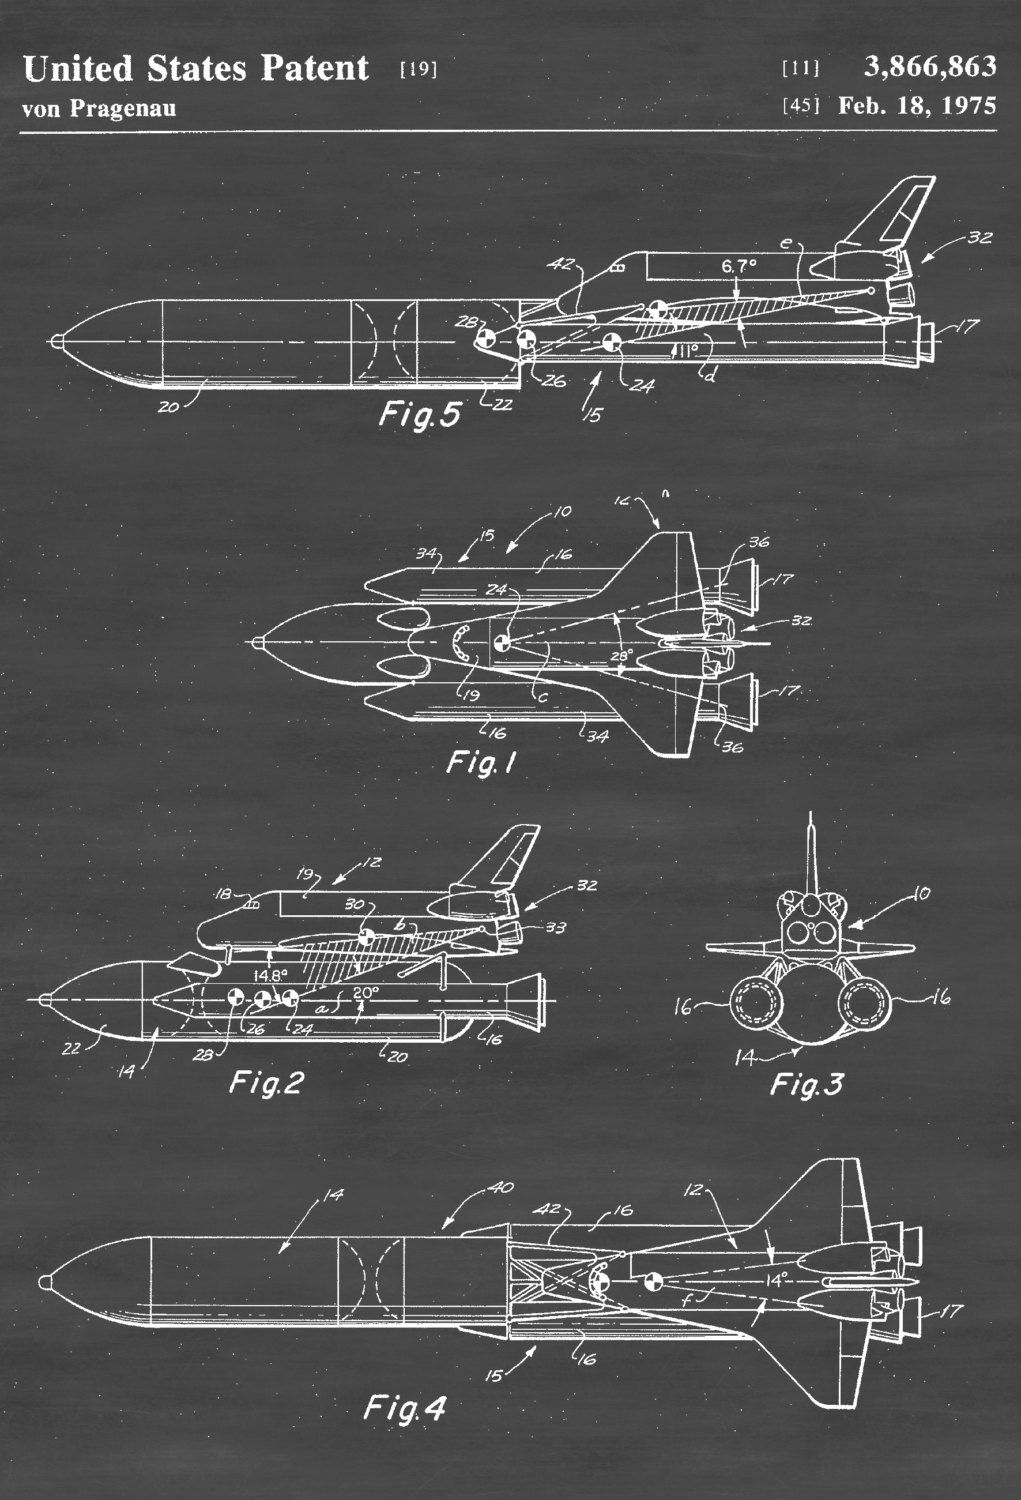 Space shuttle patent aviation art space art shuttle blueprint space shuttle patent space art aviation art blueprint pilot gift aircraft decor space poster space program diagram shuttle by patentsasprints malvernweather Image collections